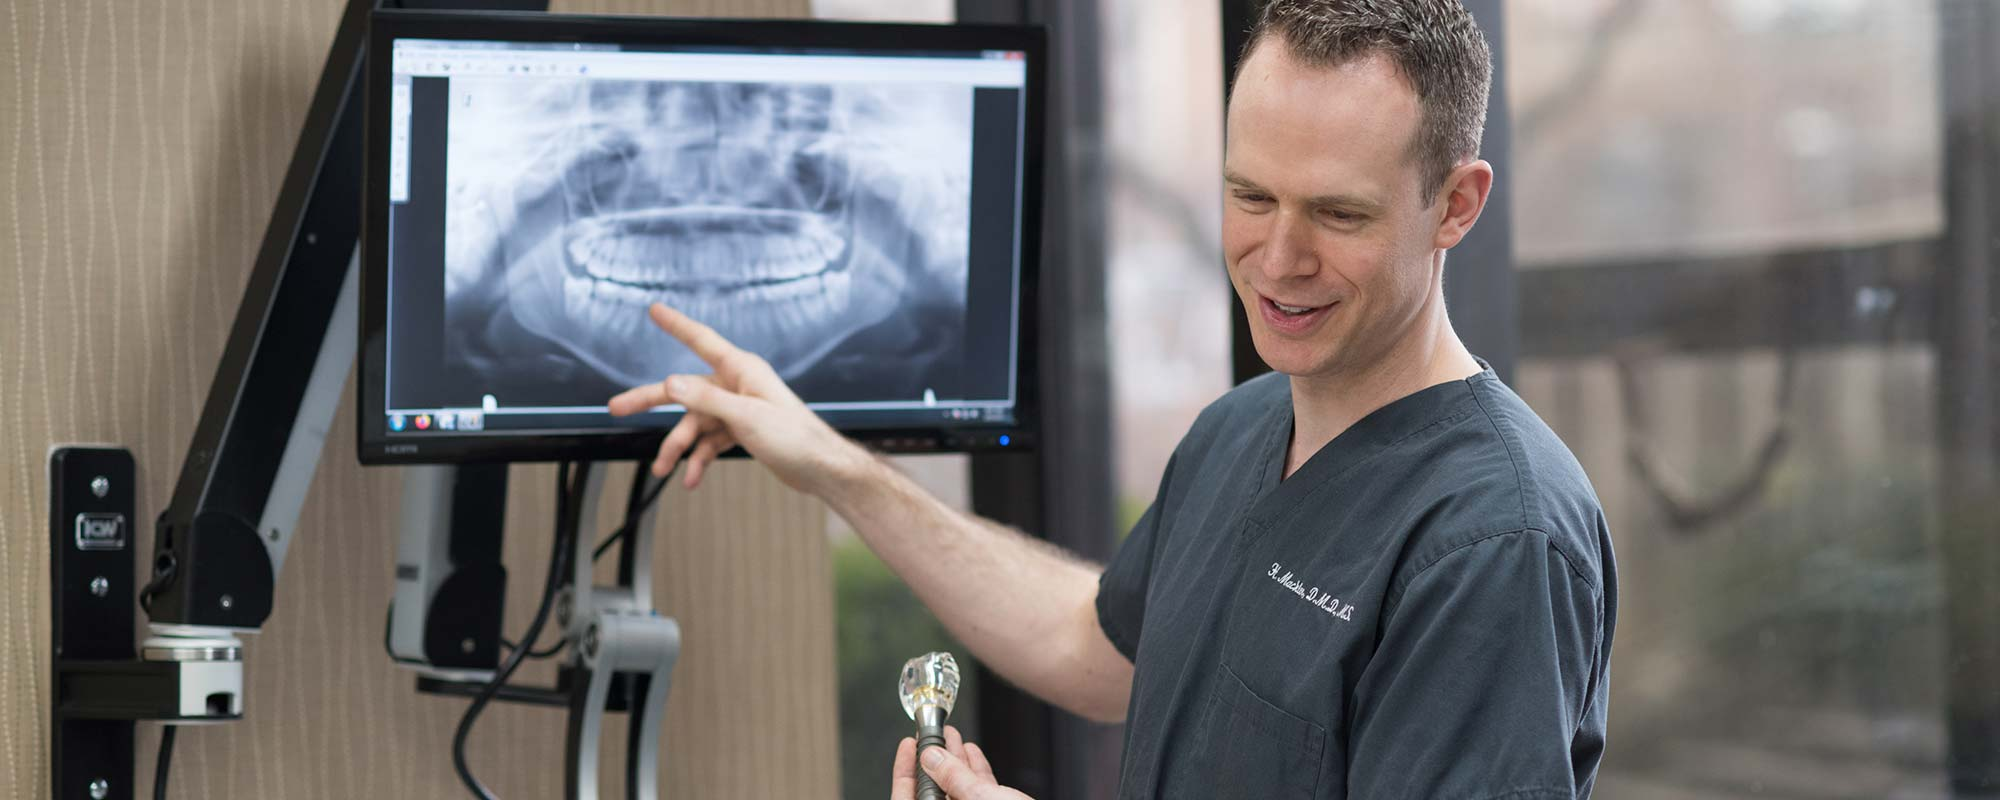 Park Dental Specialists offers TeethXpress dental implant services at our Lincoln Park and Orland Park dental clinics.